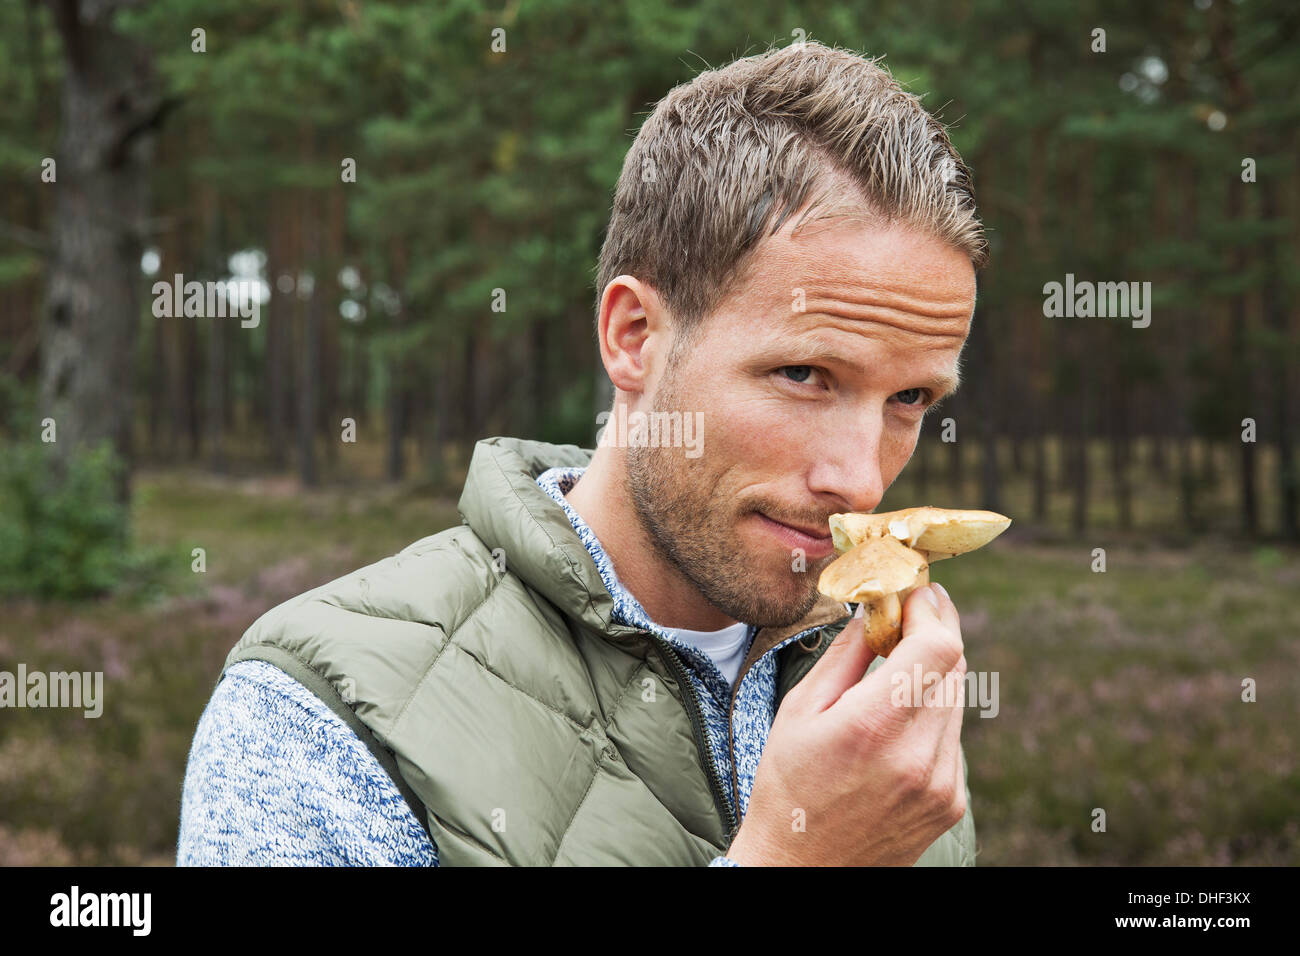 Mid adult man smelling mushroom Photo Stock